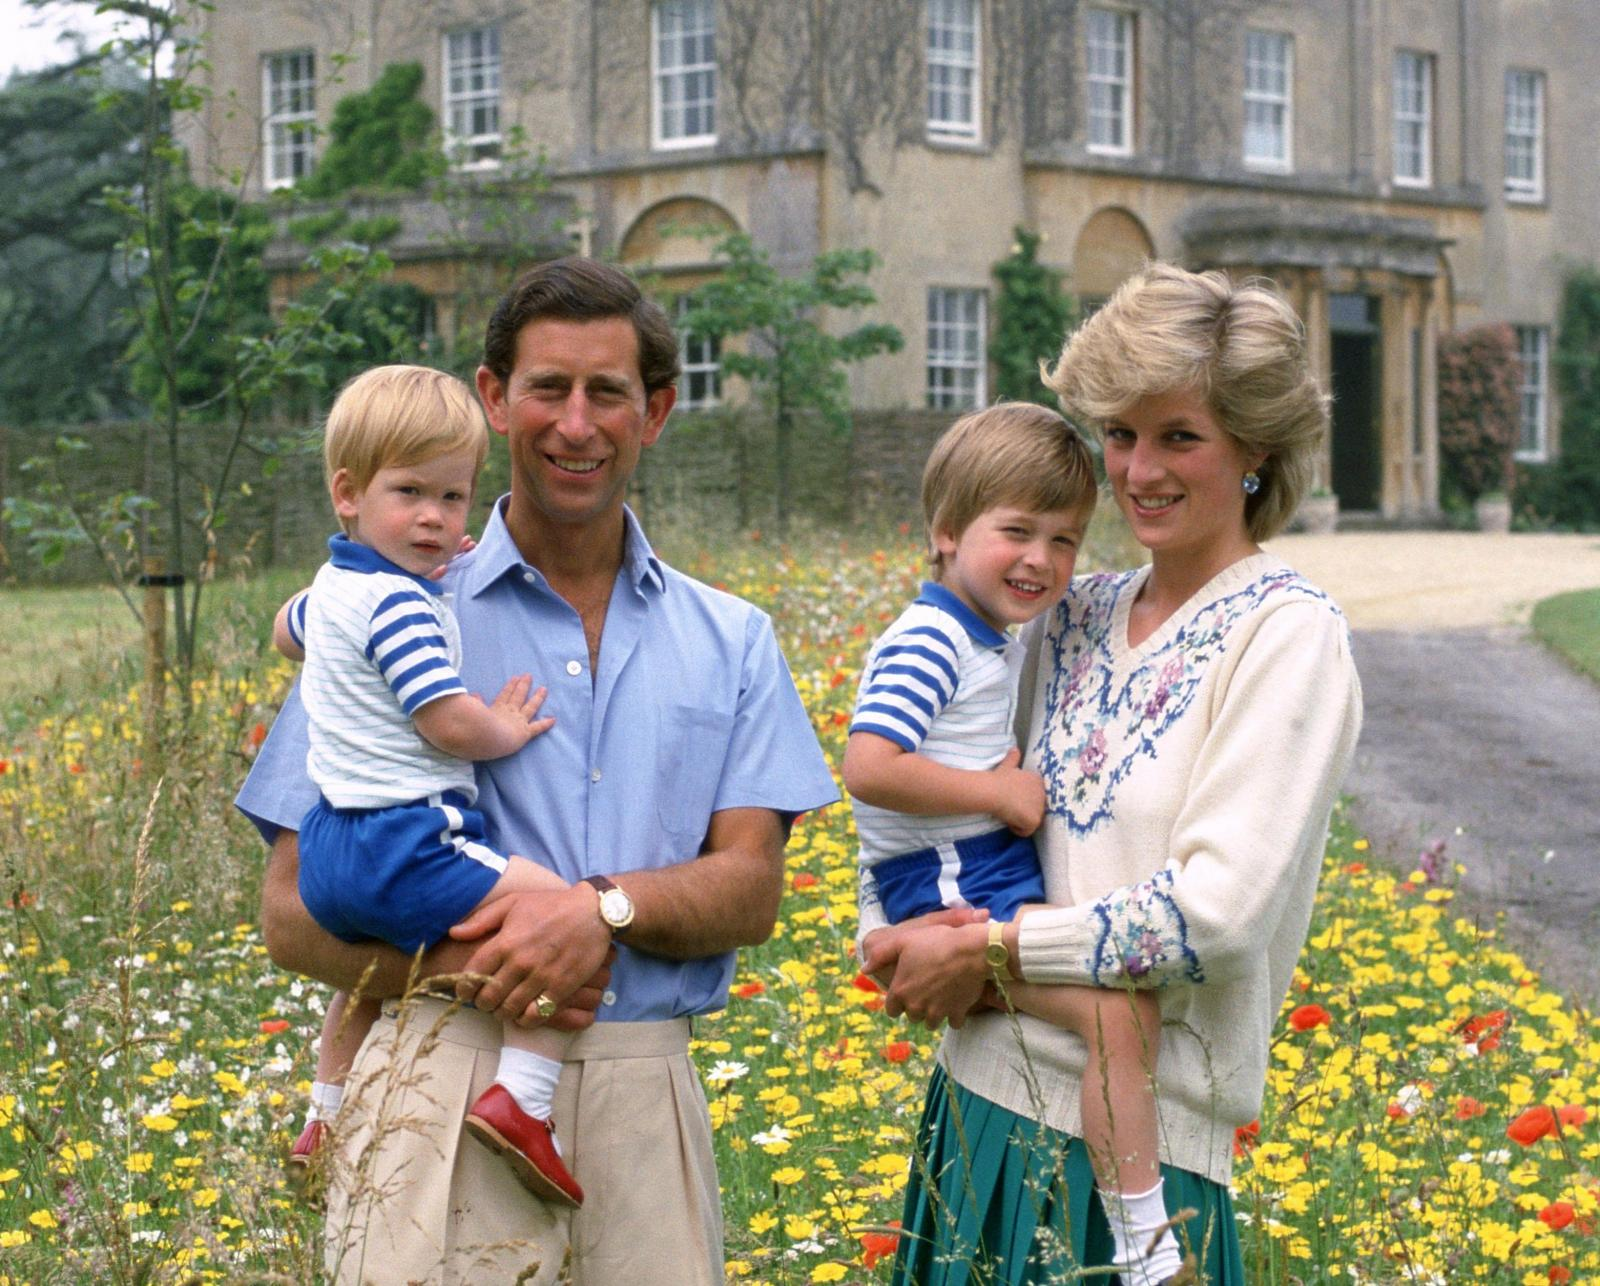 According to interviews with Diana, Prince Charles had always wanted a daughter